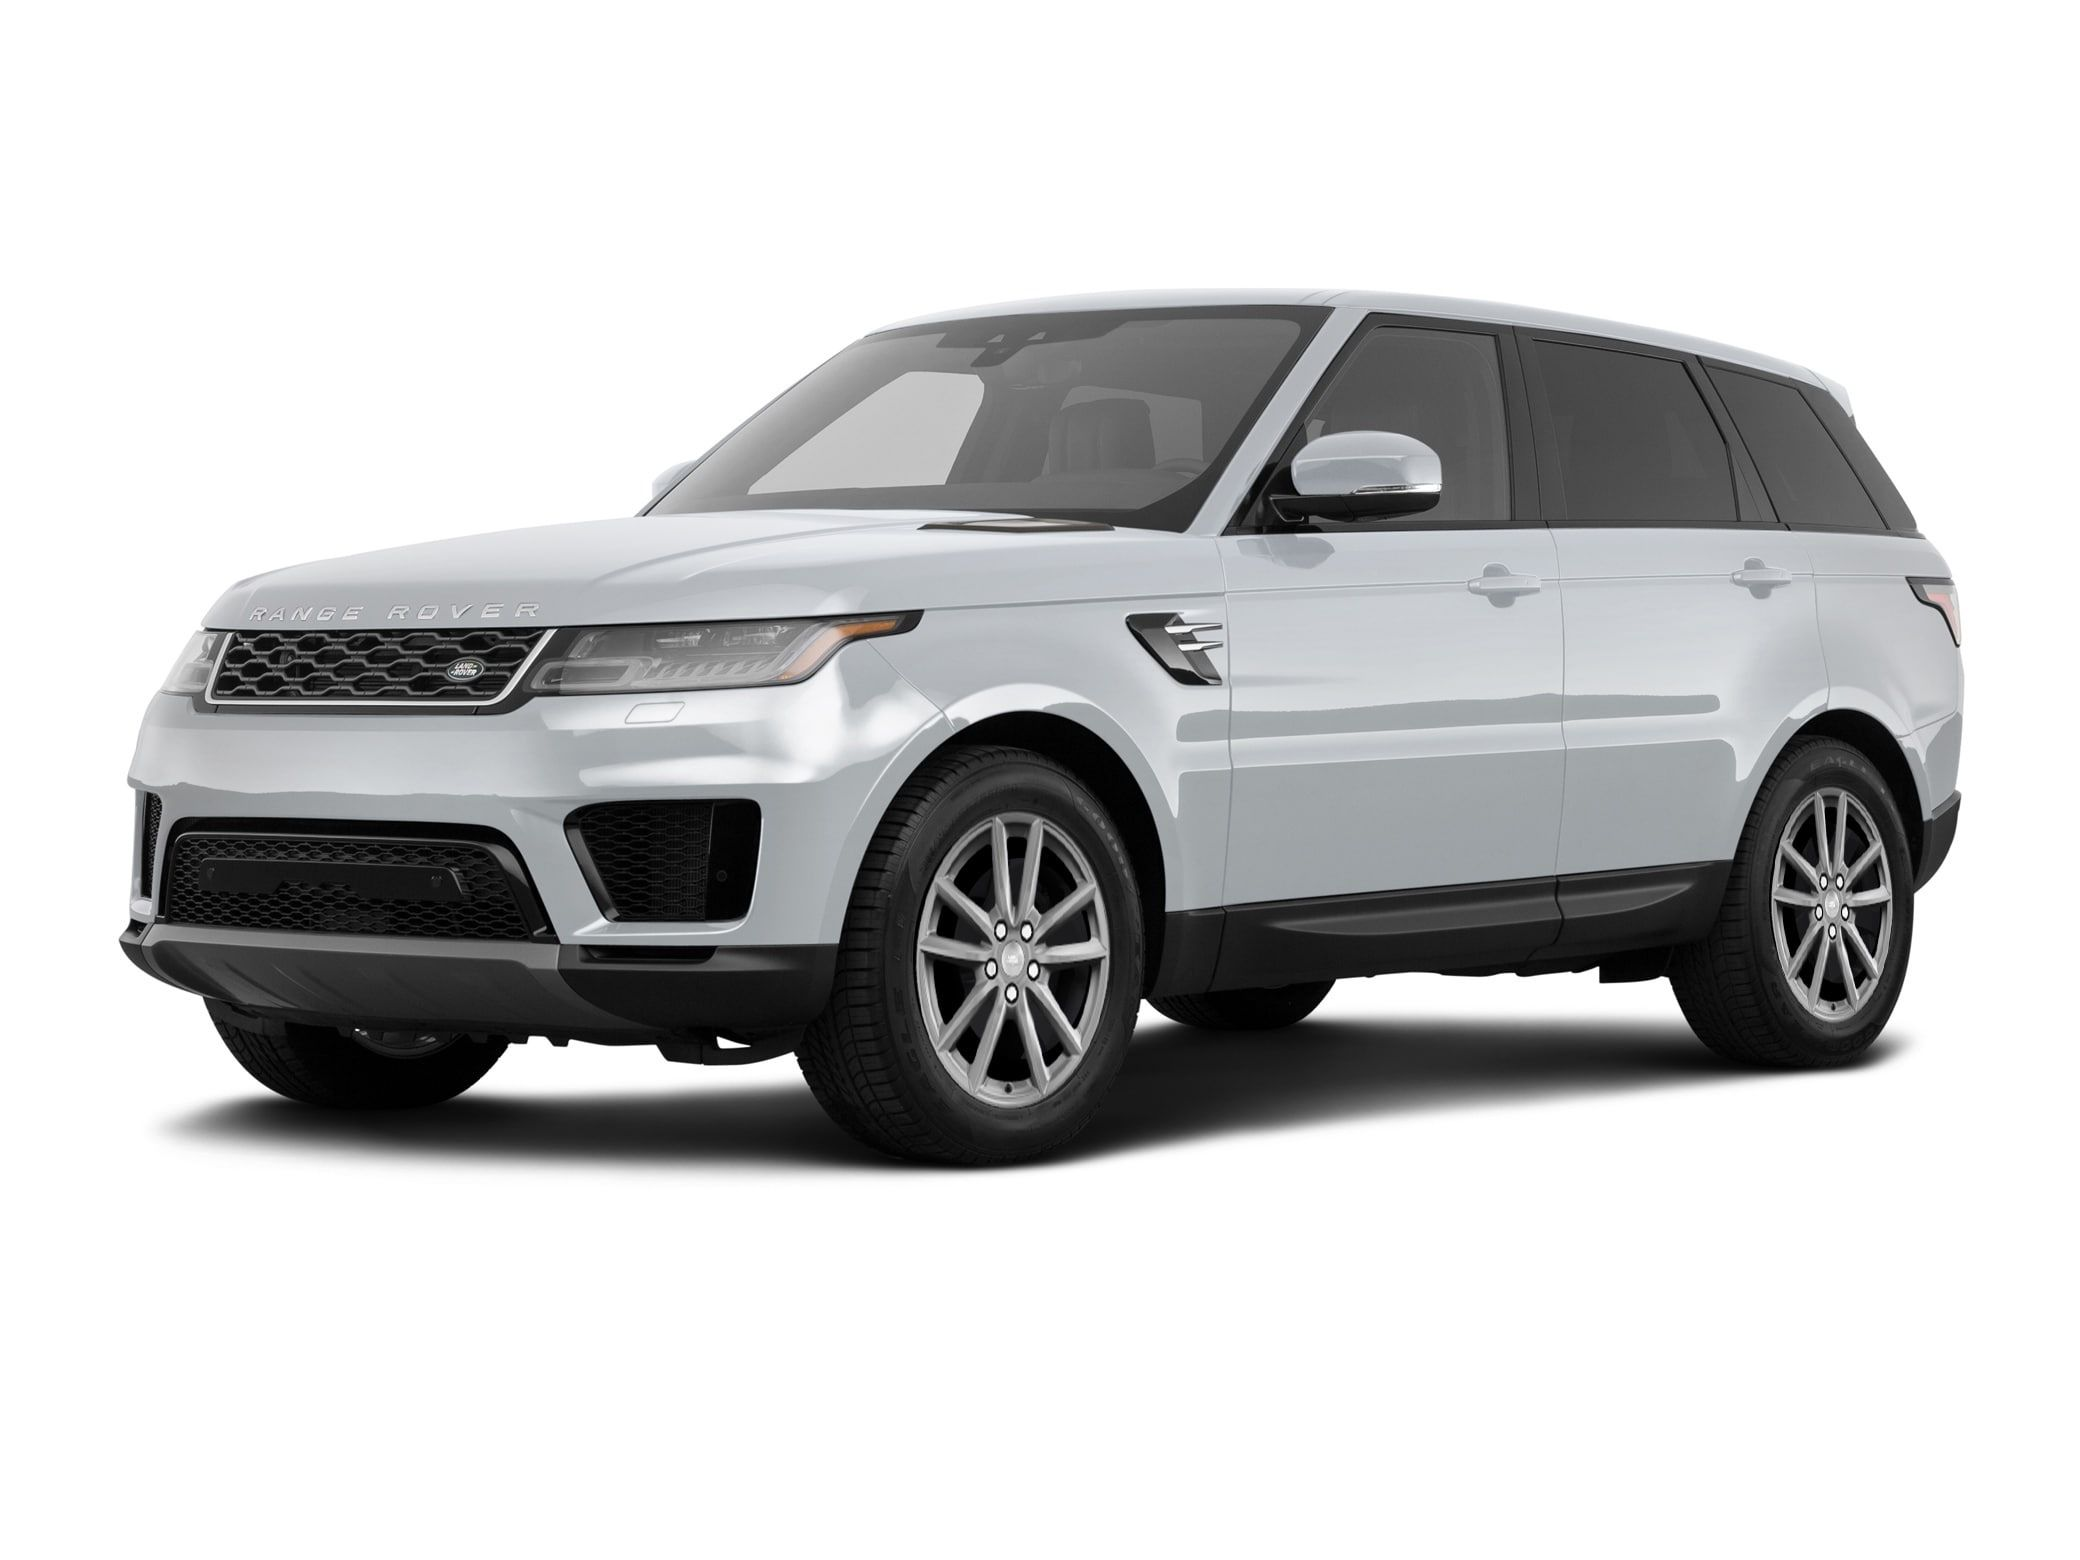 Will The 2019 Range Rover Sport Towing Capacity Have 4